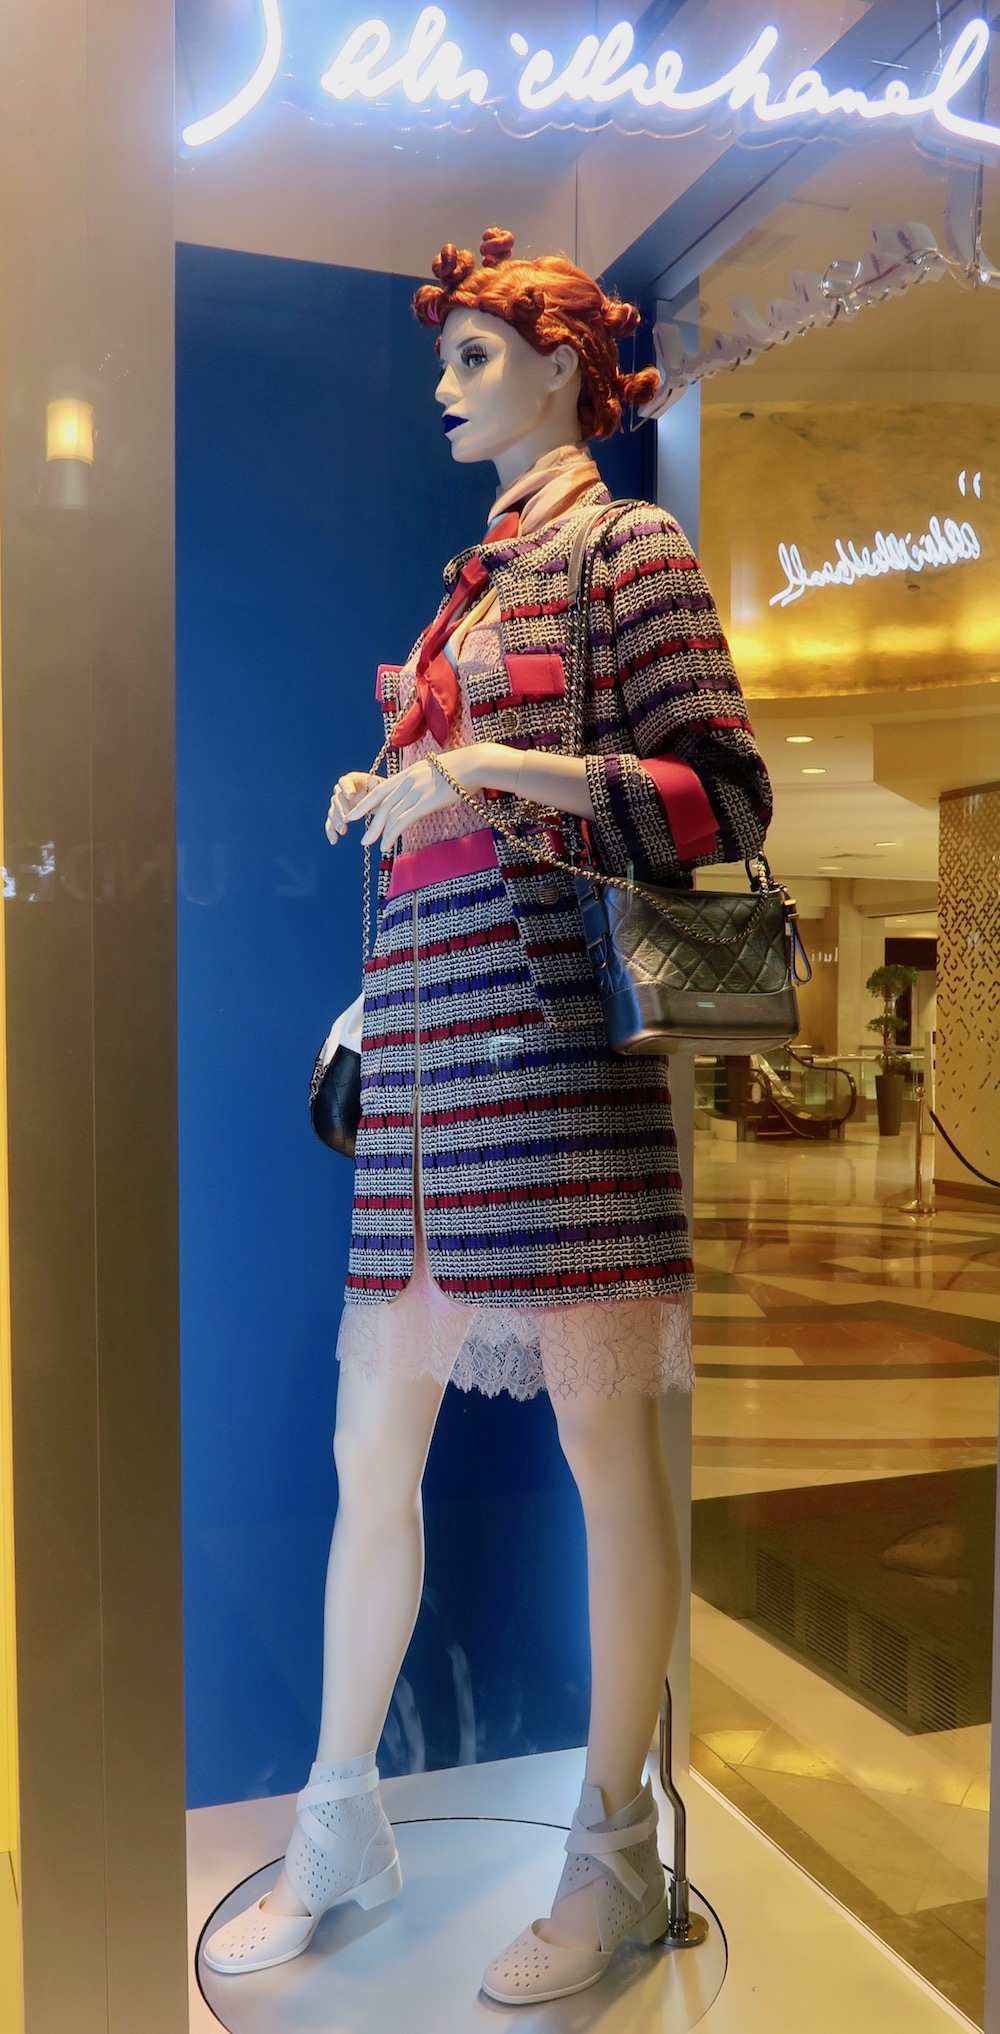 Chanel mannequin in Chanel store on Orchard |curlytraveller.com